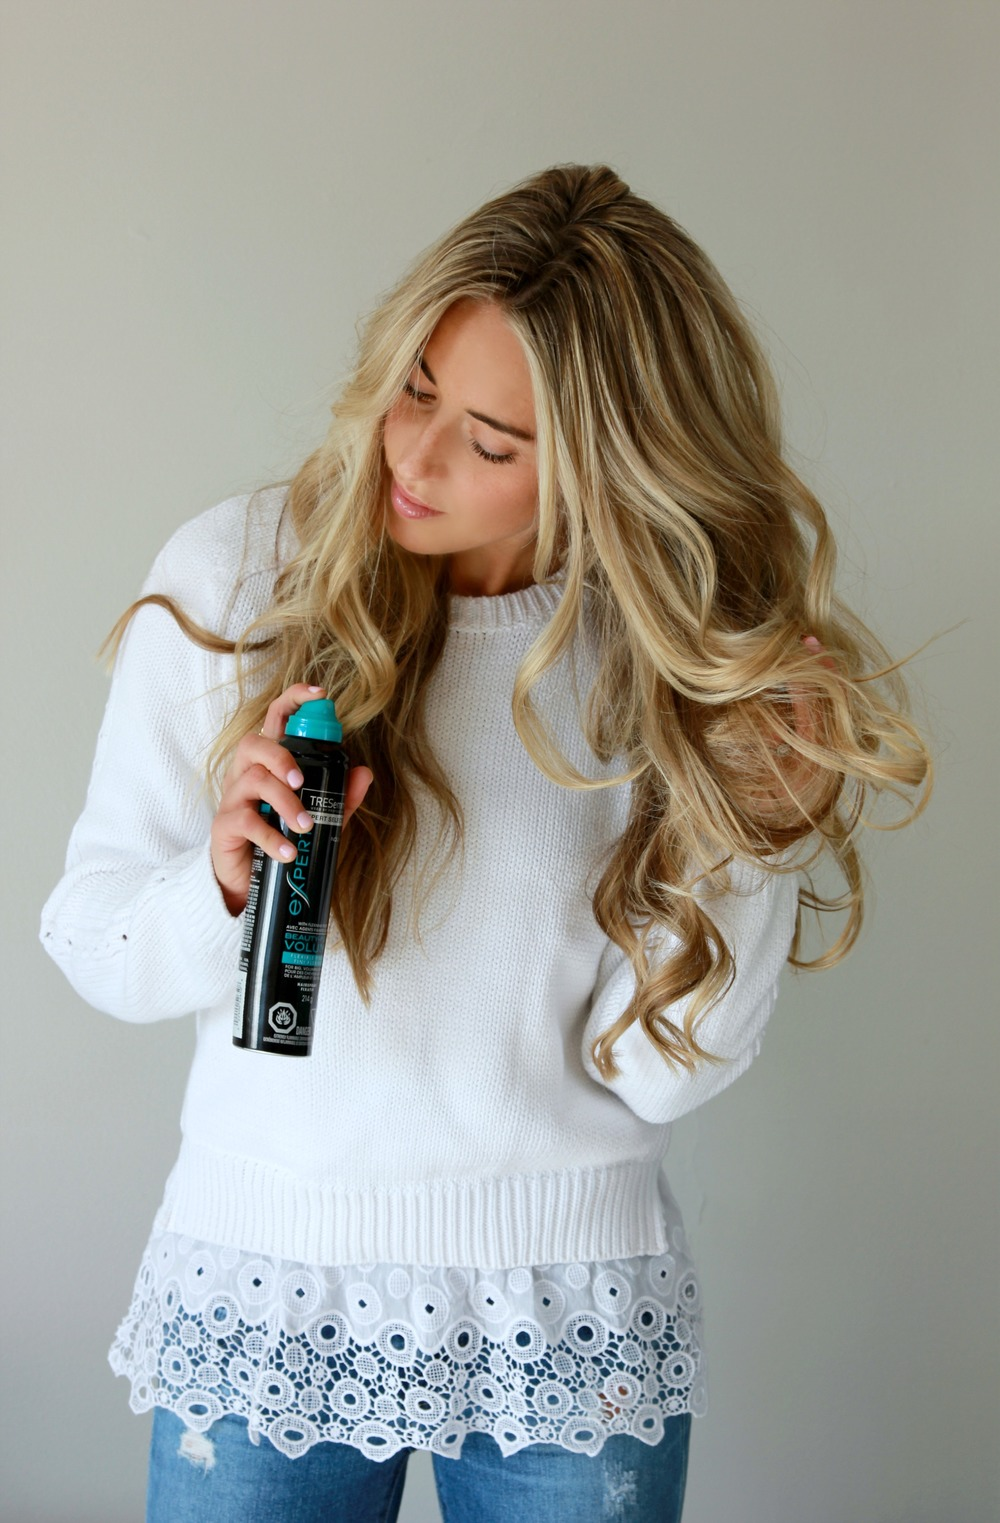 New TRESemmé Beauty Full-Volume Reverse Wash System: Condition First, Shampoo Second.;Styling Products Mousse & Hairspray Colour done by Sarah Braim of The House of Blonde, Hair Curled with XO Styling Iron